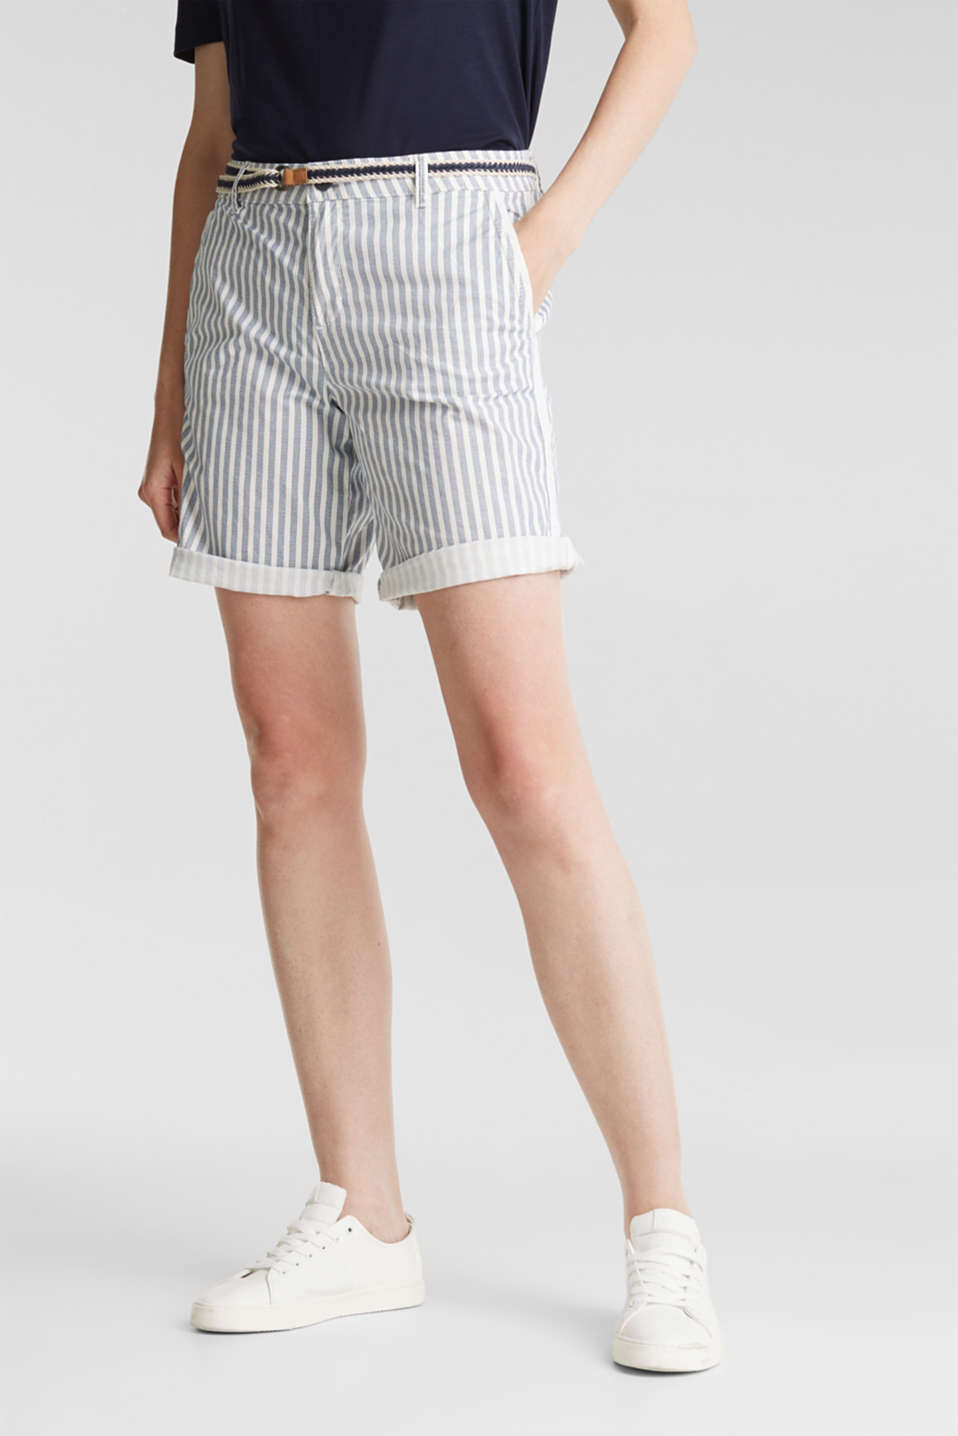 Esprit - Chino shorts with a belt